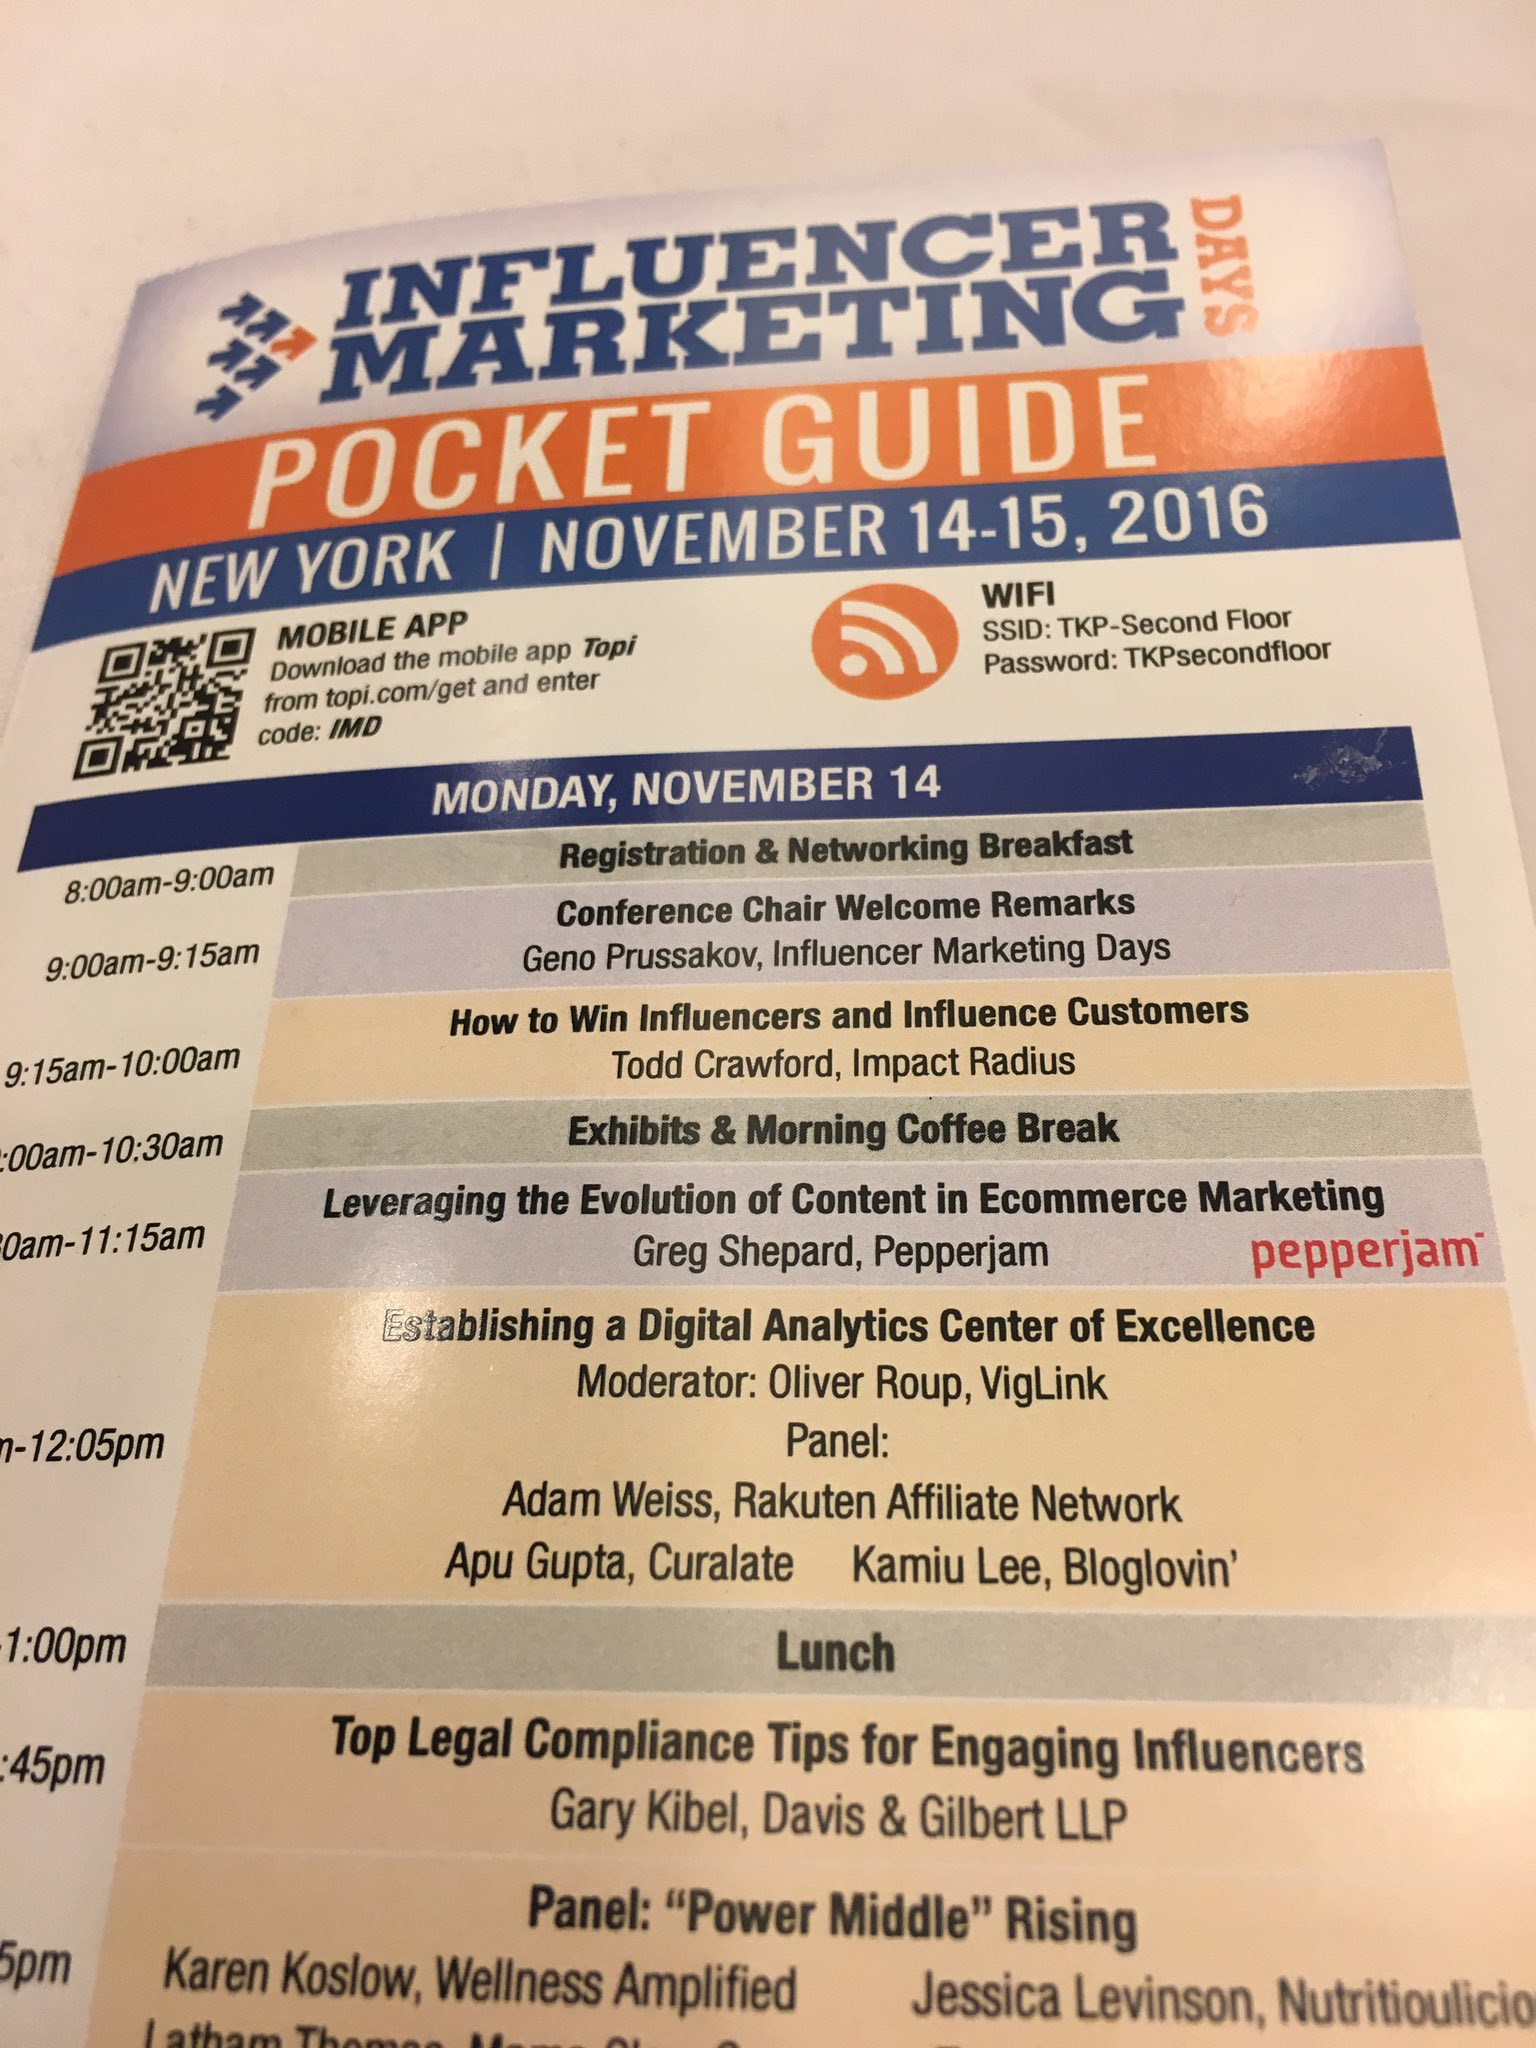 Attending Influencer marketing conference in New York. @CliffCentralCom right on time! CC @GarethCliff #InfluencerDays https://t.co/XPrf0rPxaT